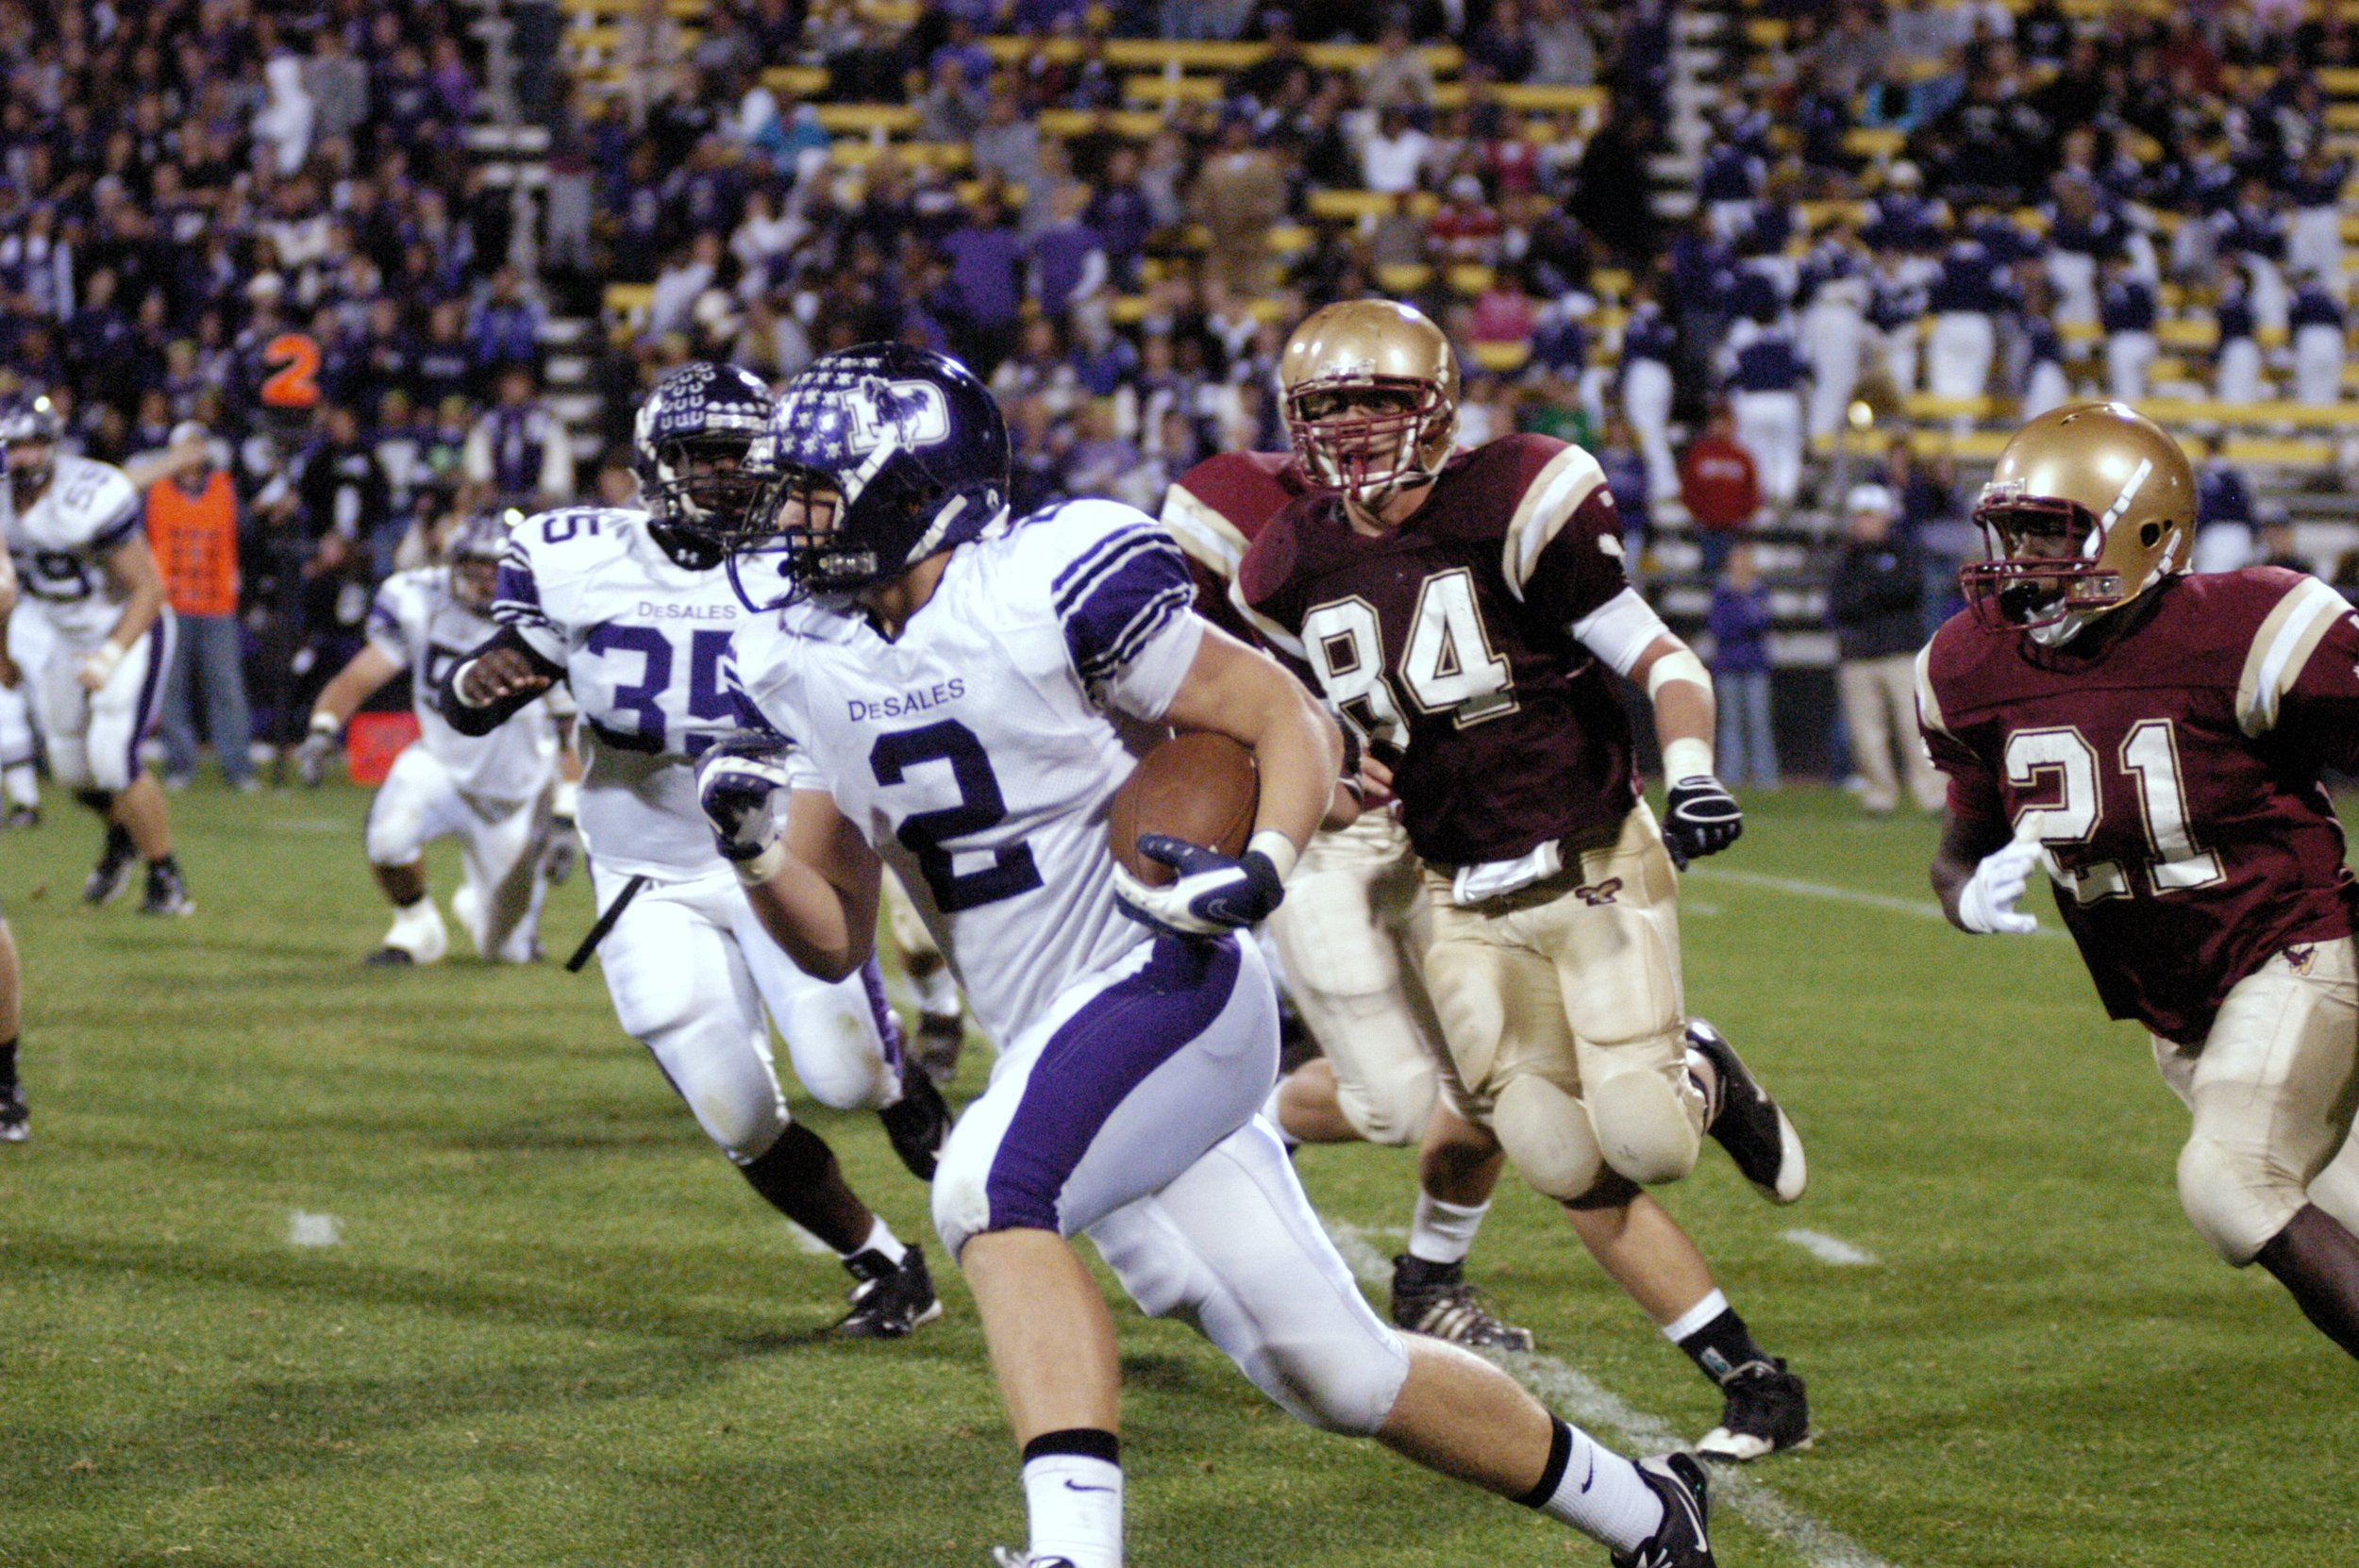 Josh Kusan (2) ran for 135 yards and had a key interception late in the 4th quarter to preserve the victory for the Stallions (photo credit - Barb Dougherty)